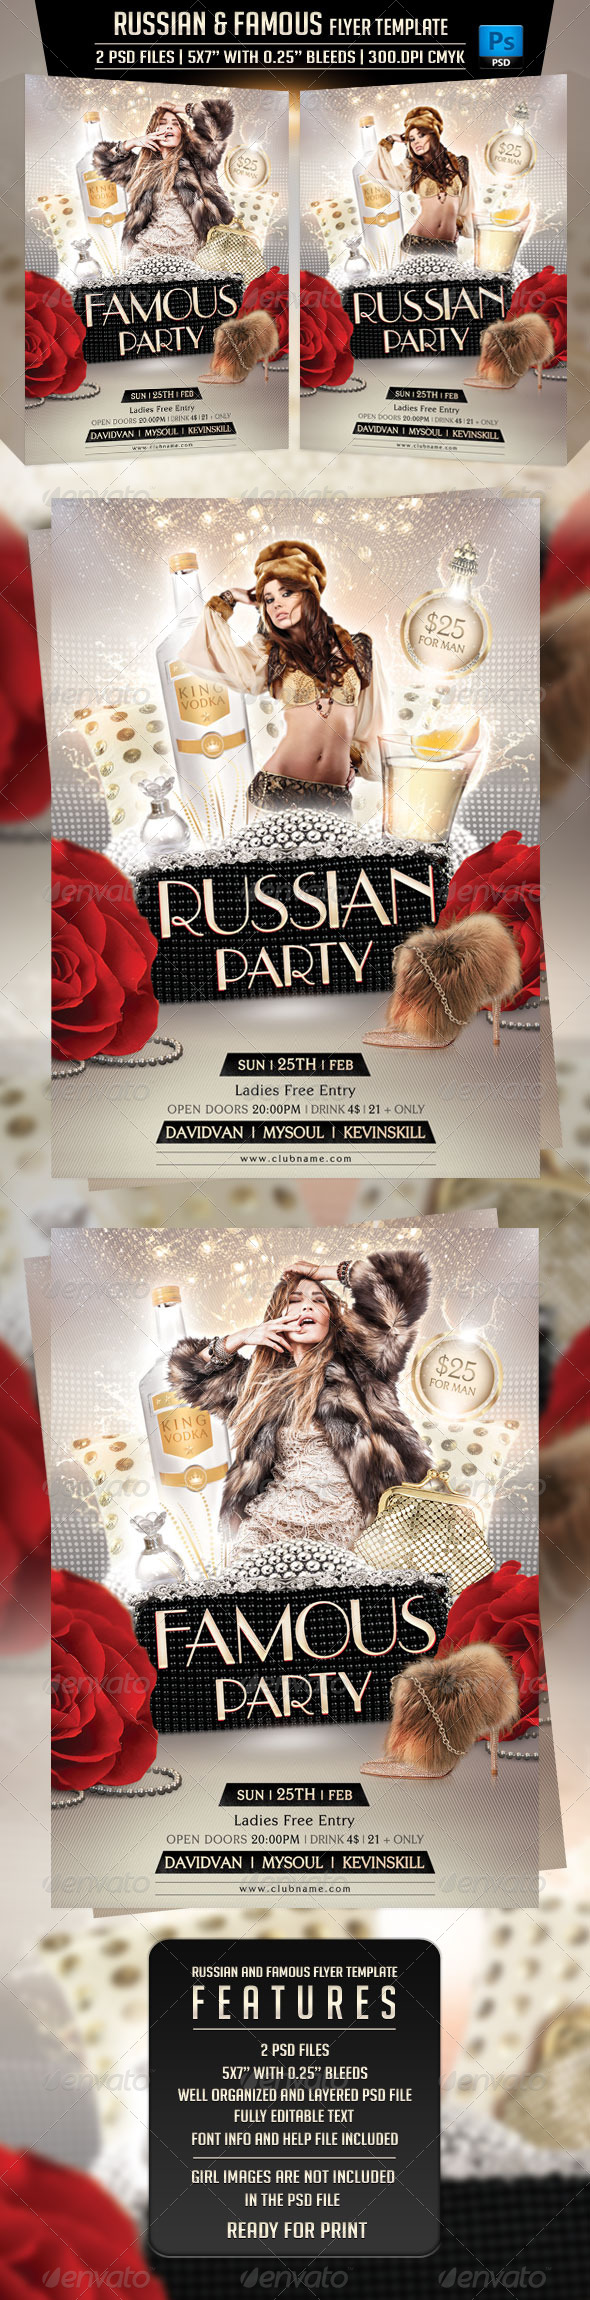 Russian and Famous Flyer Template - Clubs & Parties Events